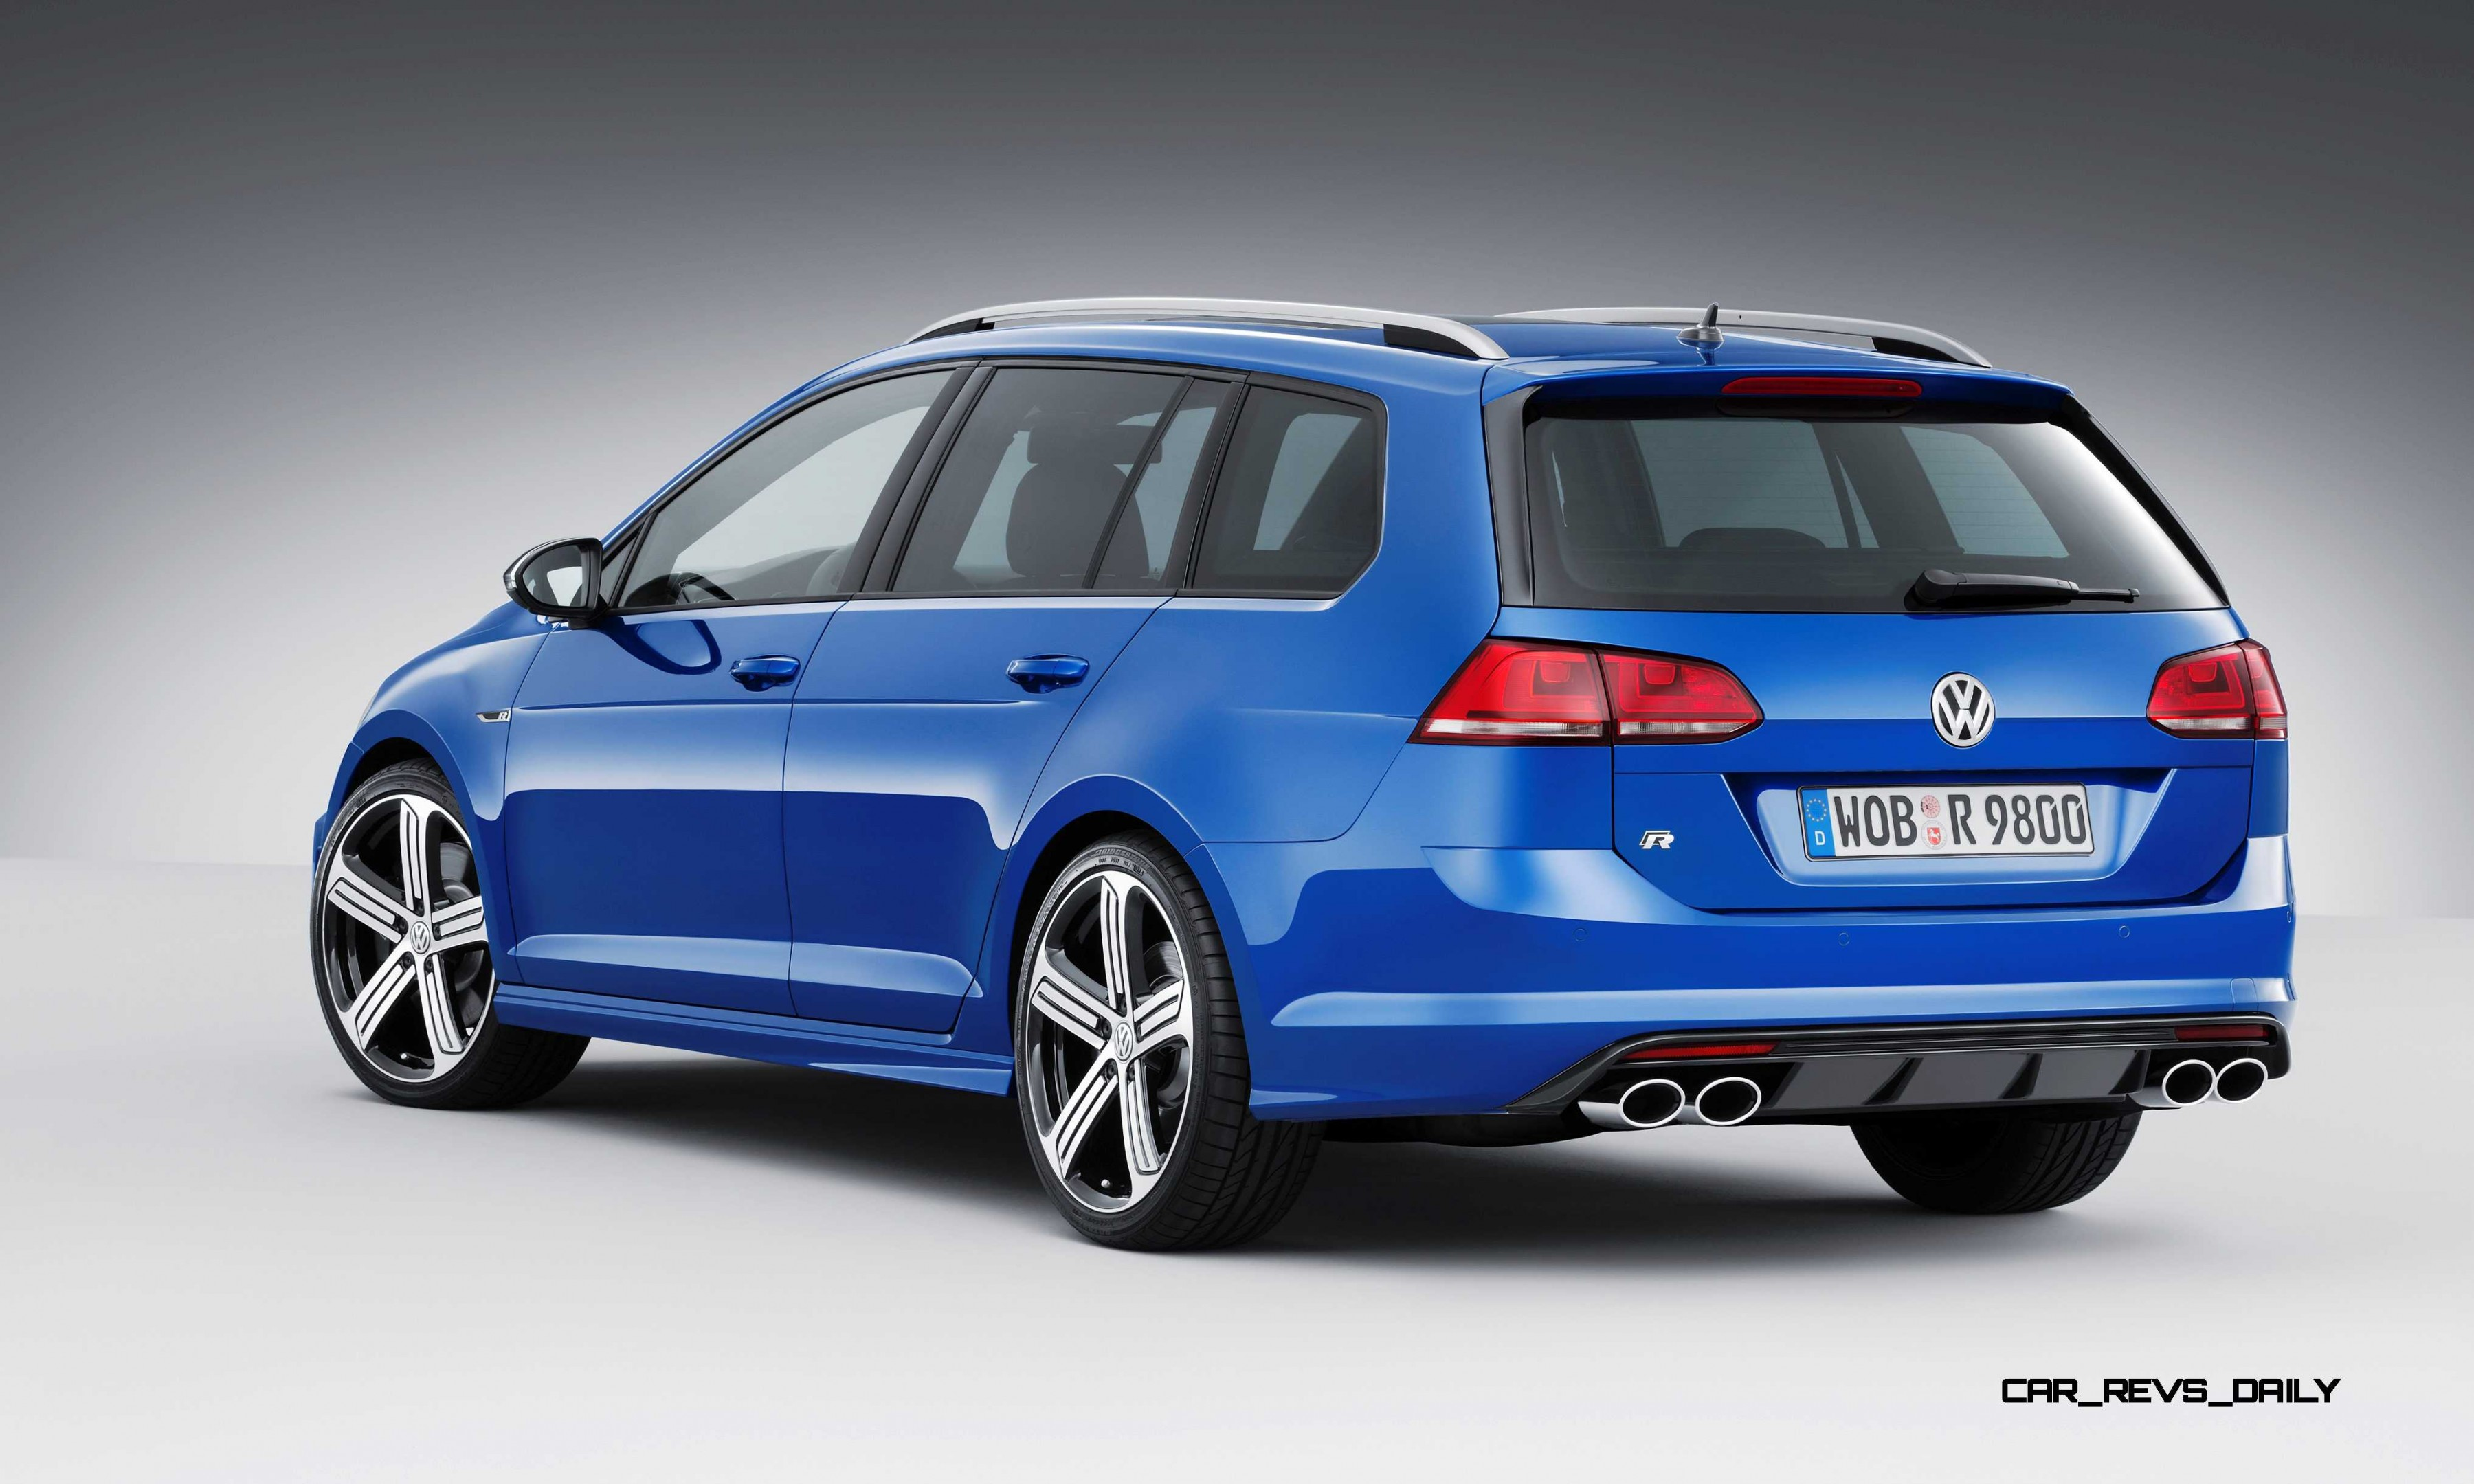 2016 Volkswagen Golf R Sportwagen La Debut Huge Tease Or